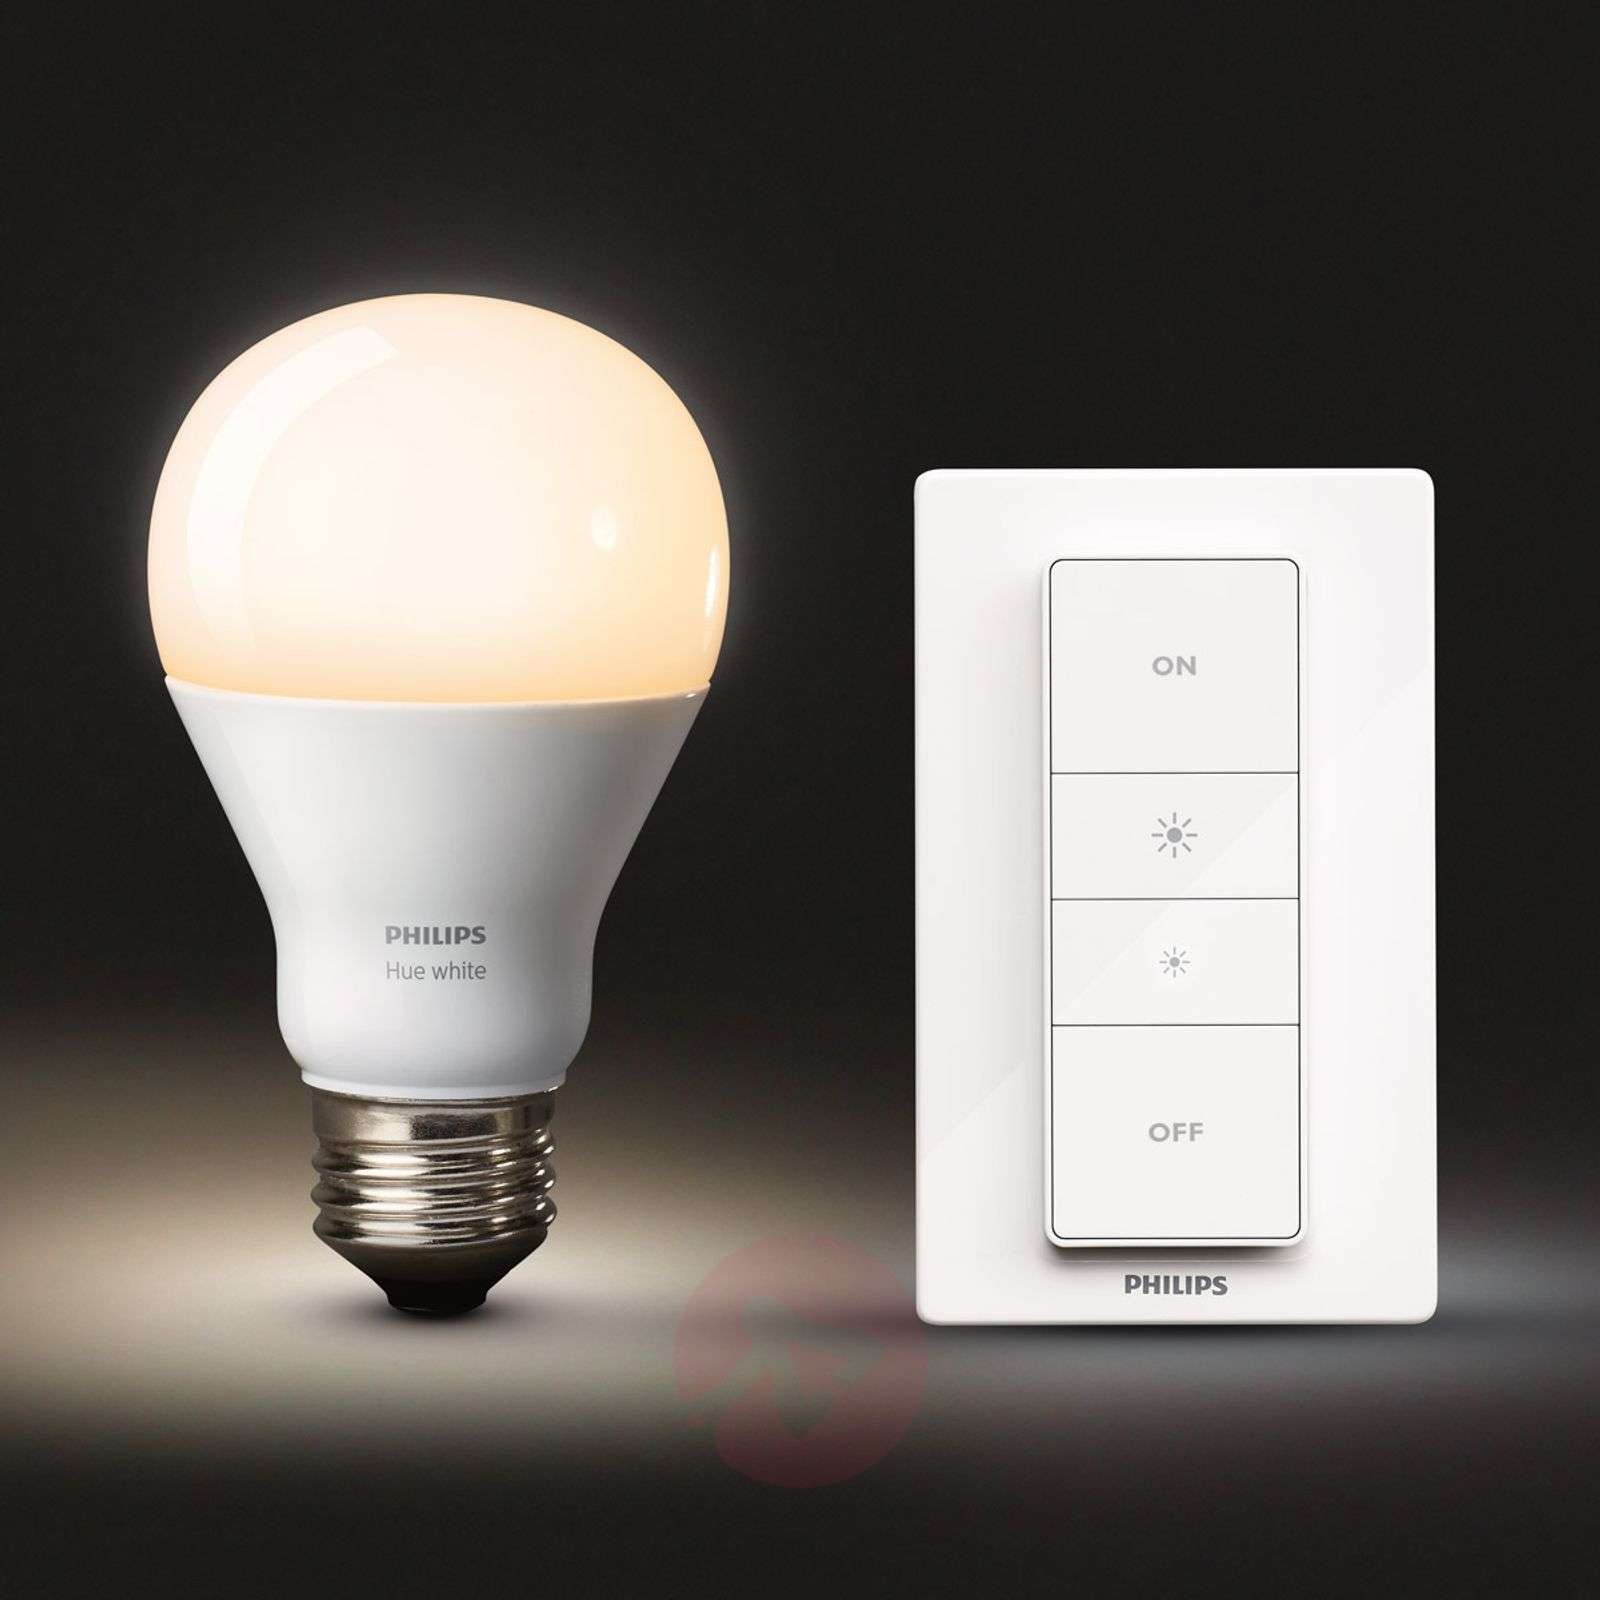 philips hue wireless dimming kit 9 5w e27. Black Bedroom Furniture Sets. Home Design Ideas